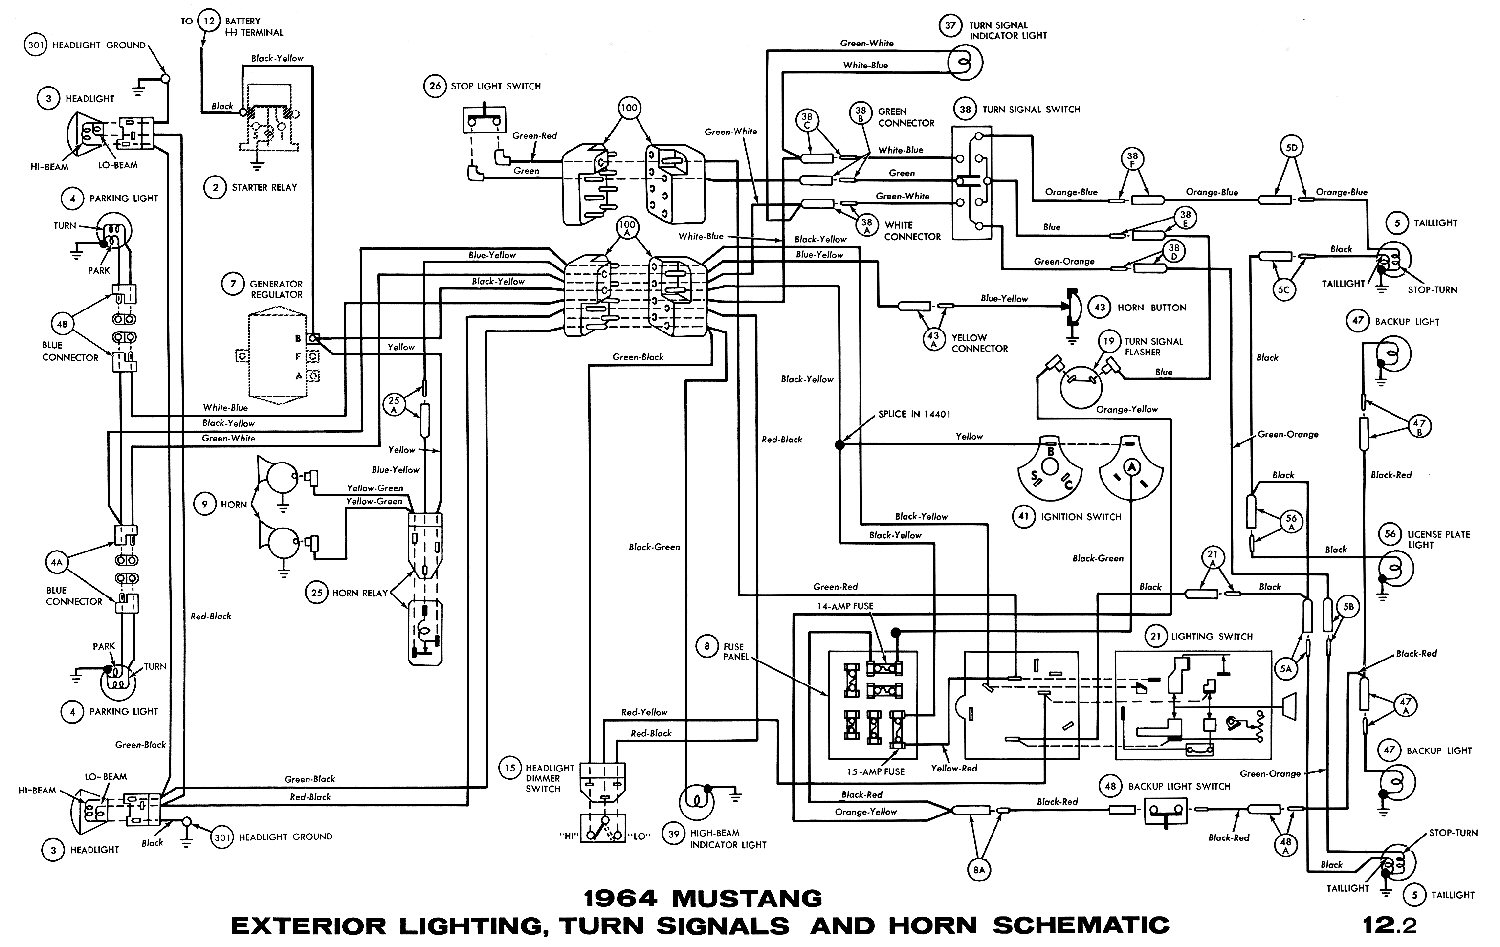 1964 mustang wiring diagrams average joe restorationTurn Signal Indicator Wiring Directly To Indicator Cluster Scooter #8